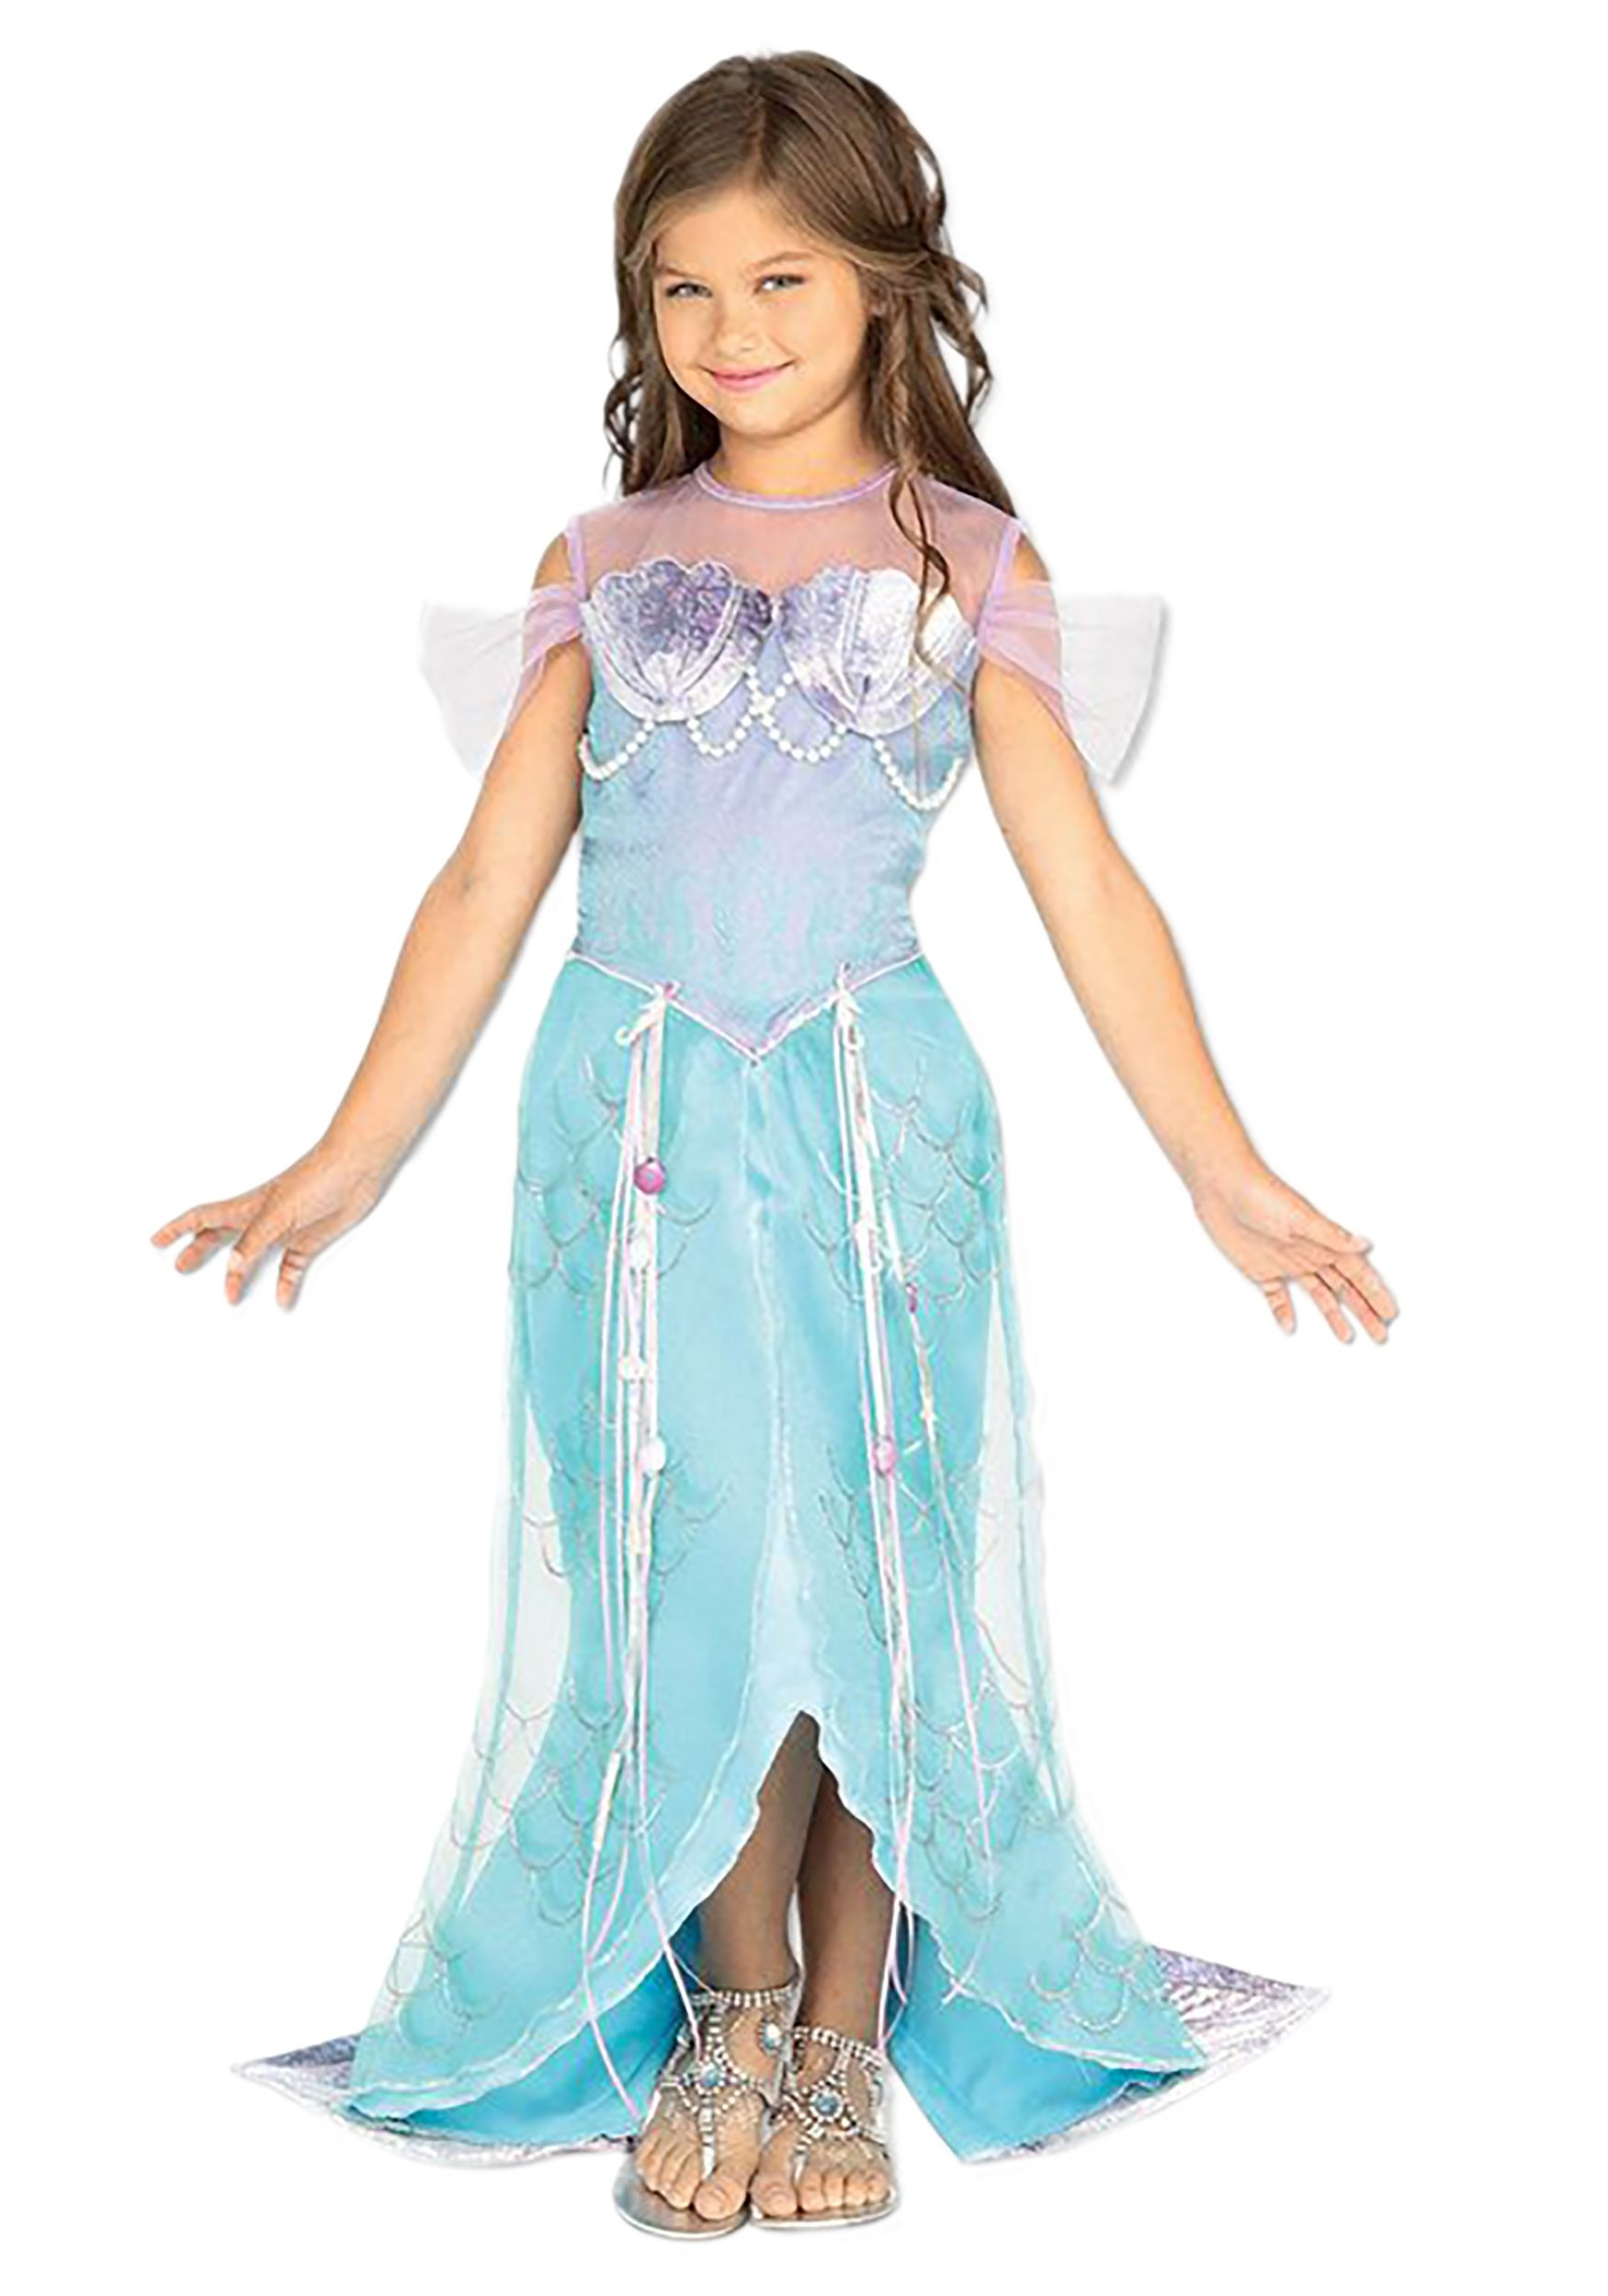 Mermaid Princess Costume